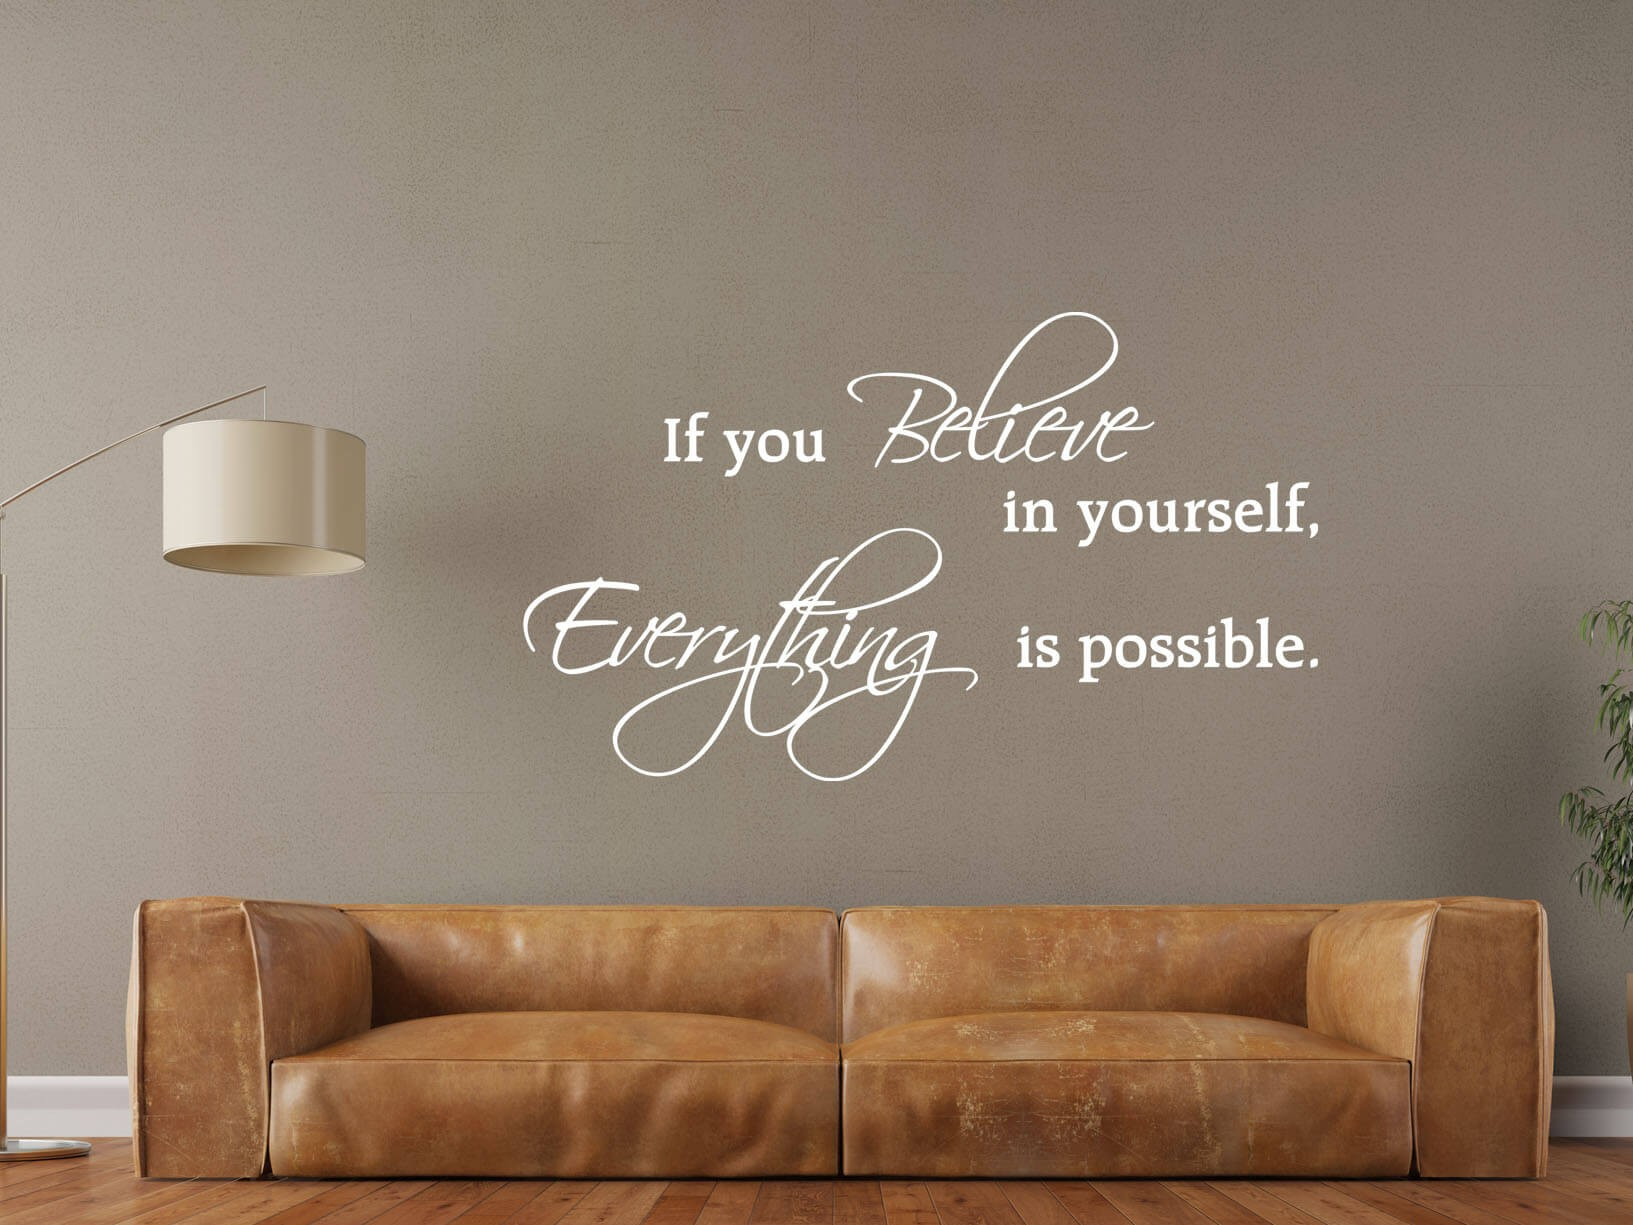 Muursticker Woonkamer Wit Muursticker Quotif You Believe In Yourself Everything Is